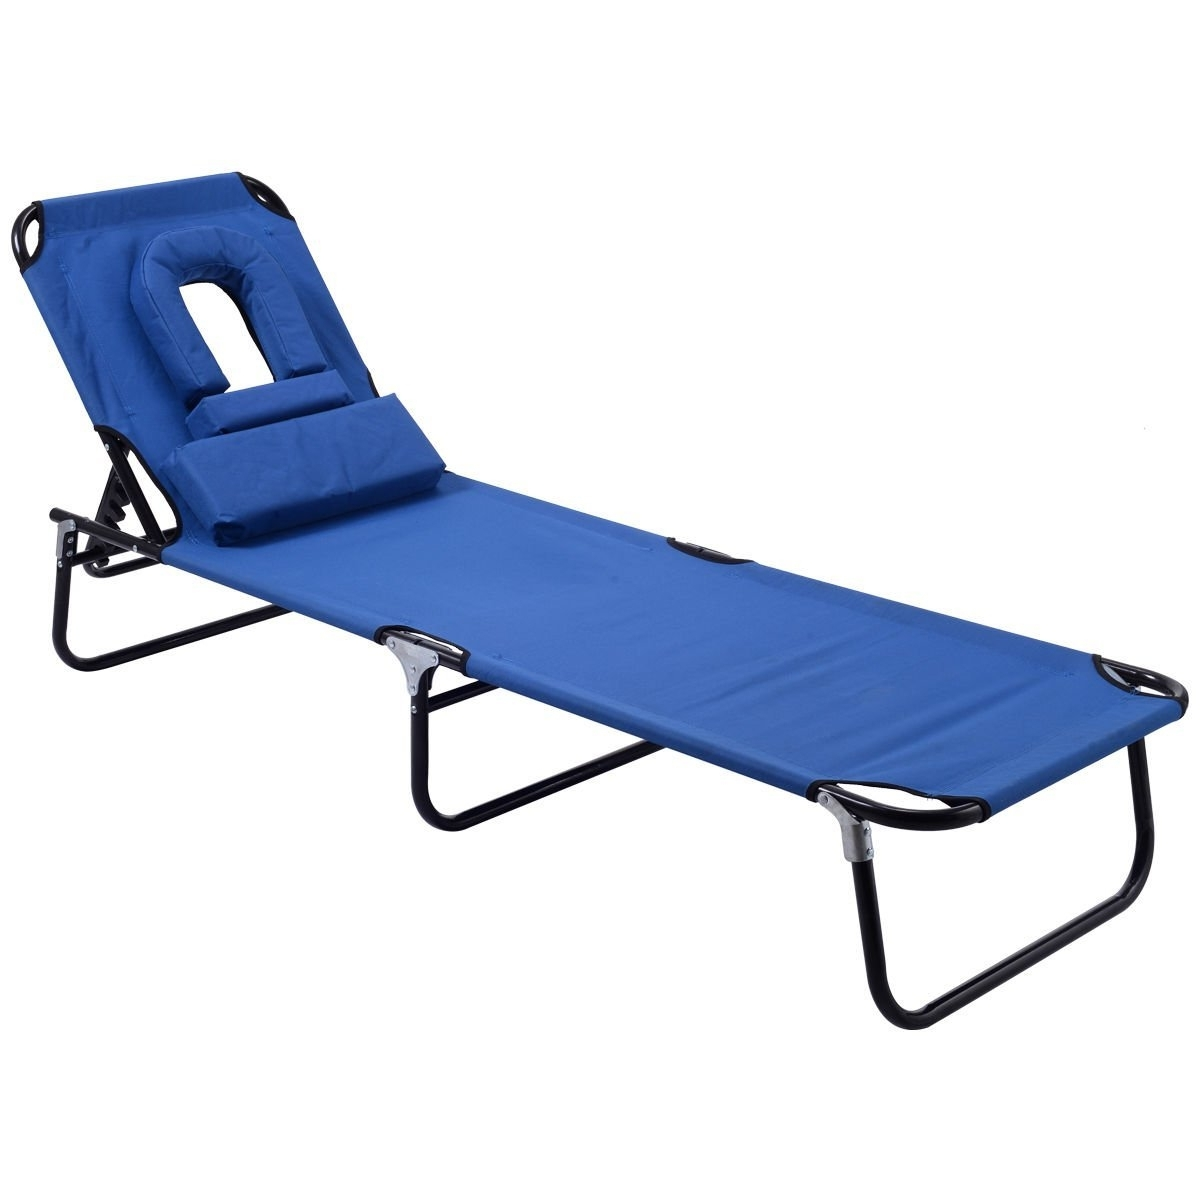 Preferred Amazon: Goplus Folding Chaise Lounge Chair Bed Outdoor Patio Intended For Reclining Chaise Lounge Chairs (View 10 of 15)